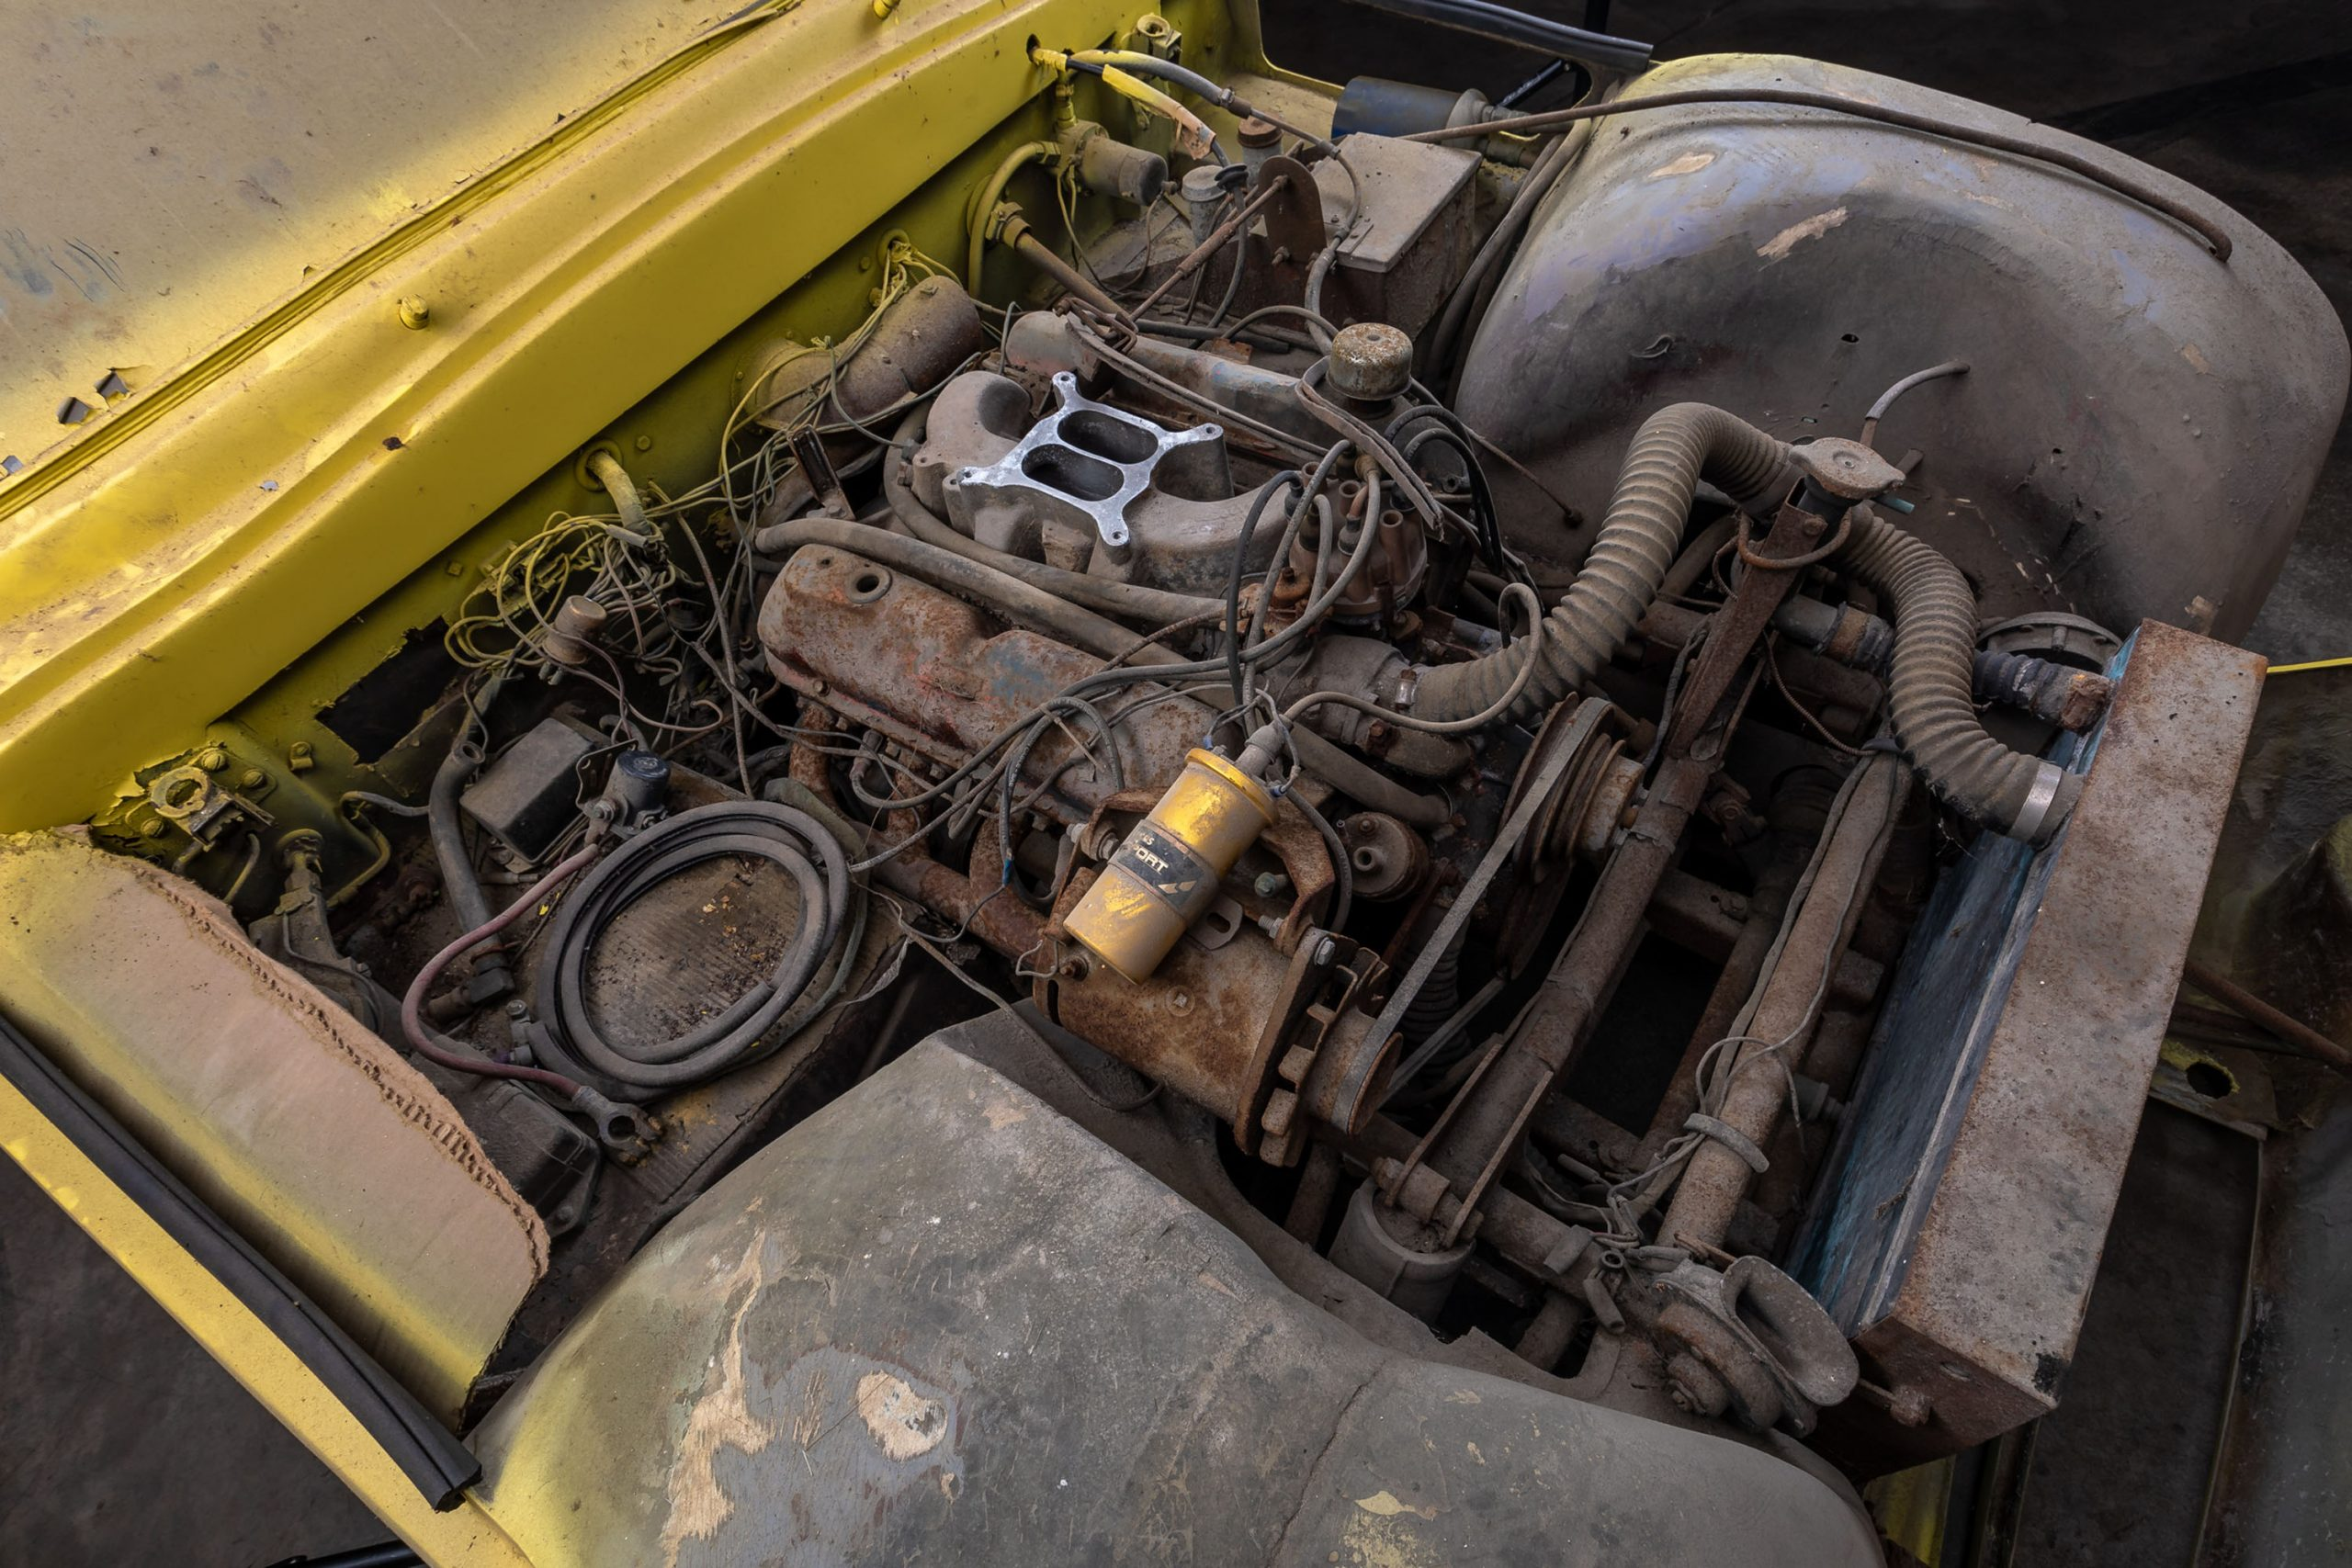 1965 Griffith Series 200 engine